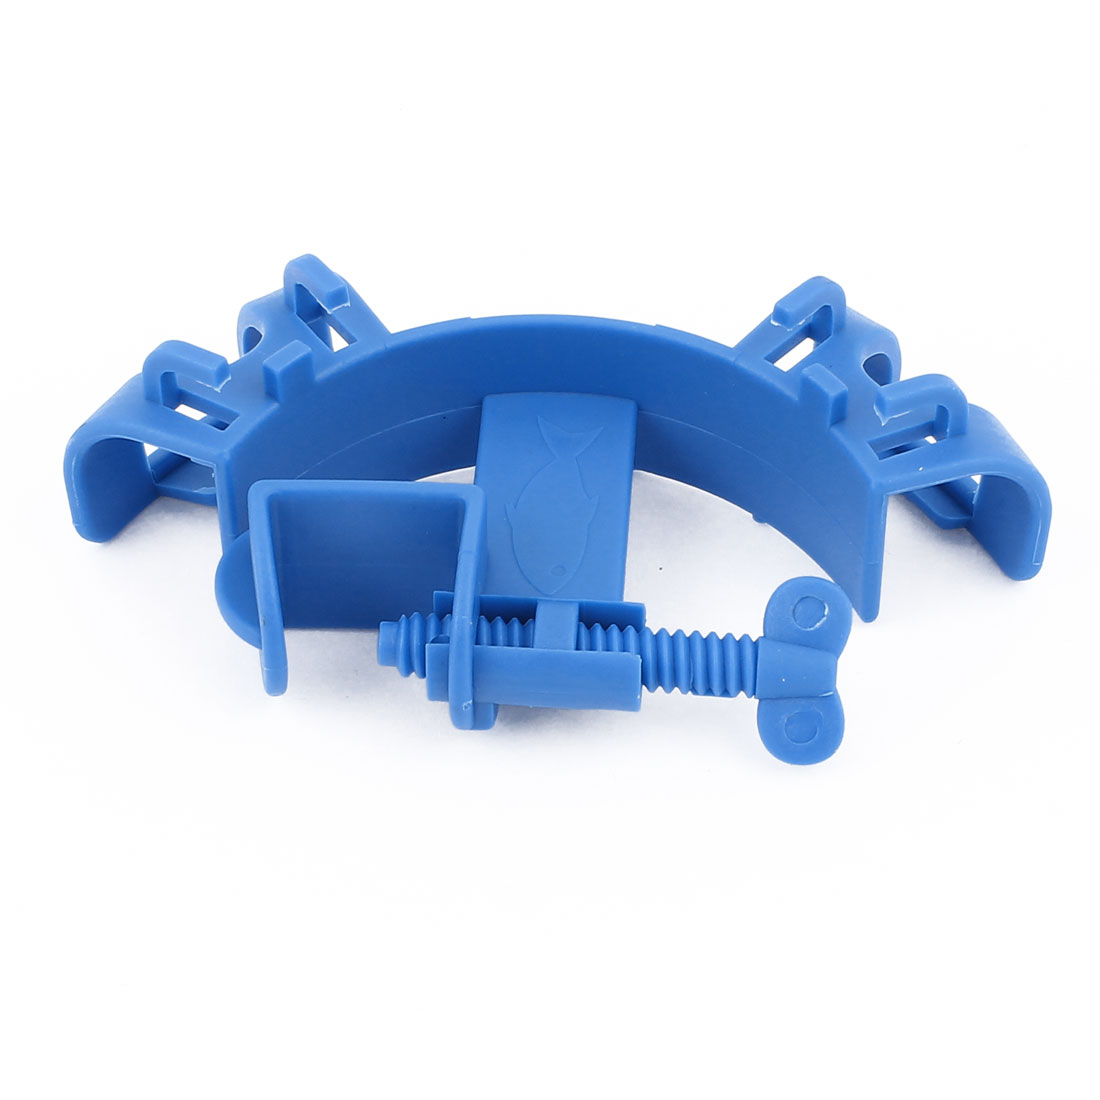 Blue Plastic Aquarium Fish Tank Fishbowl Mounting Water Tube Hose Holder